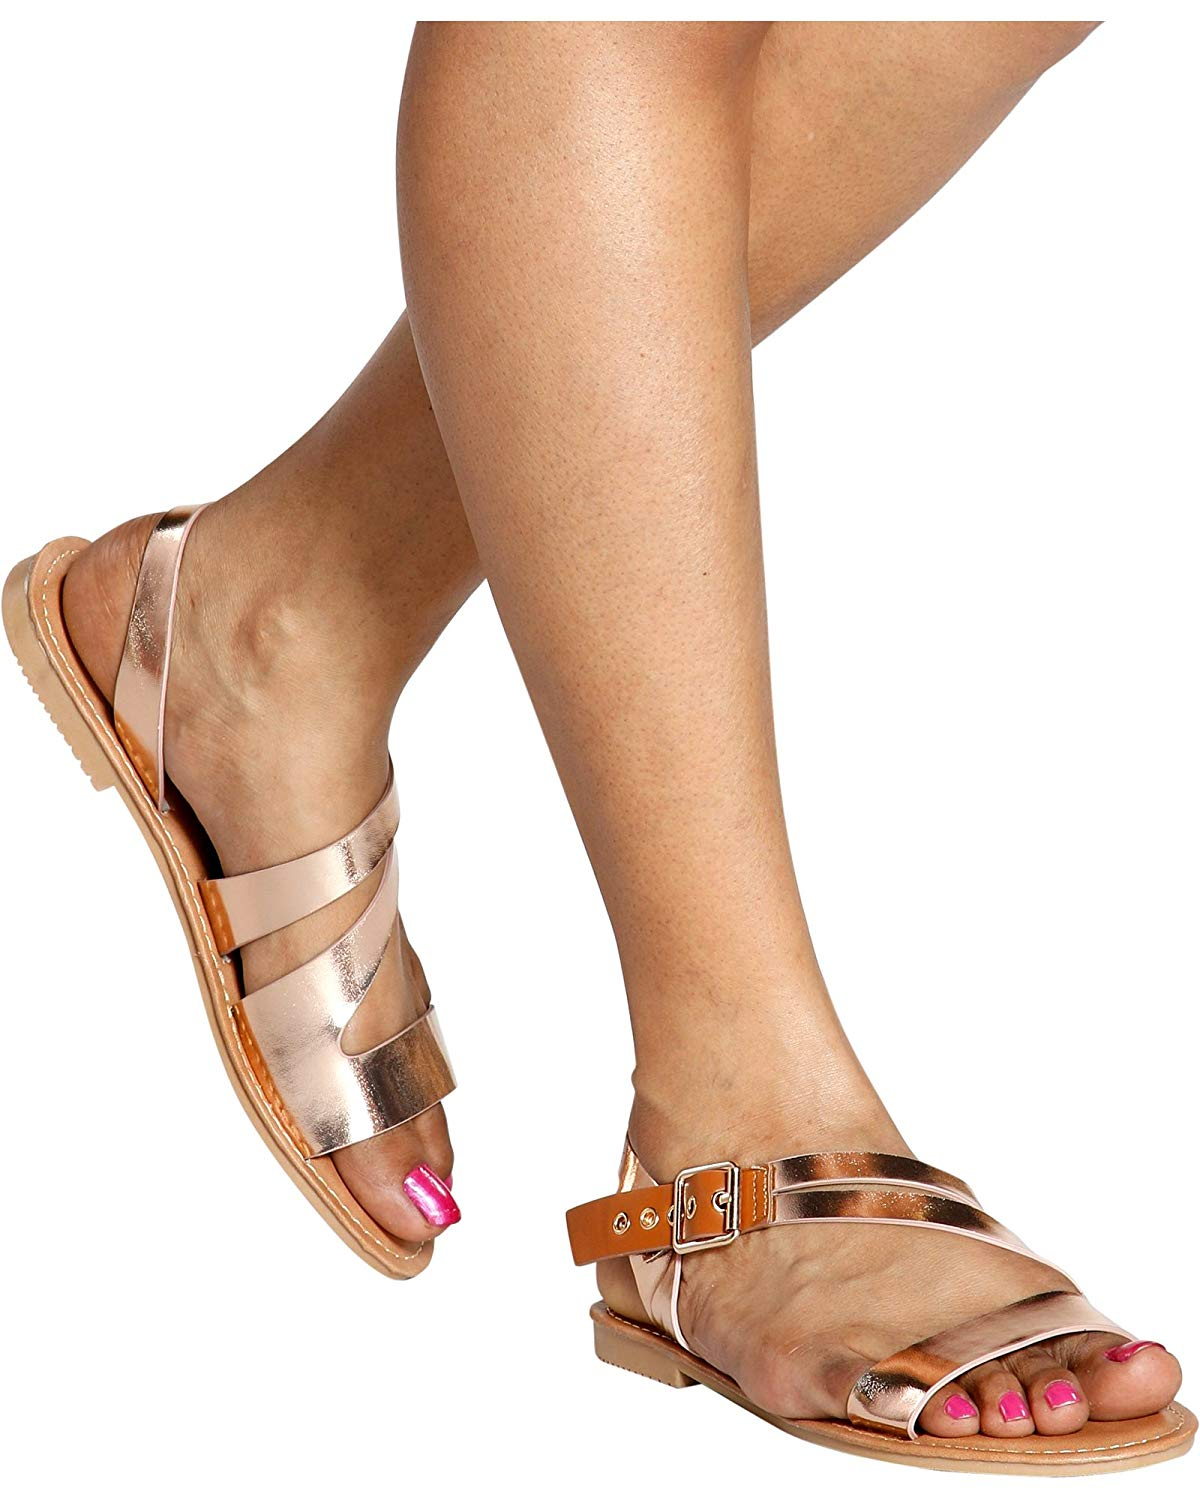 Jessica Carlyle Women's Casual Open Toe Strappy Gladiator Ankle Strap Flat Sandals